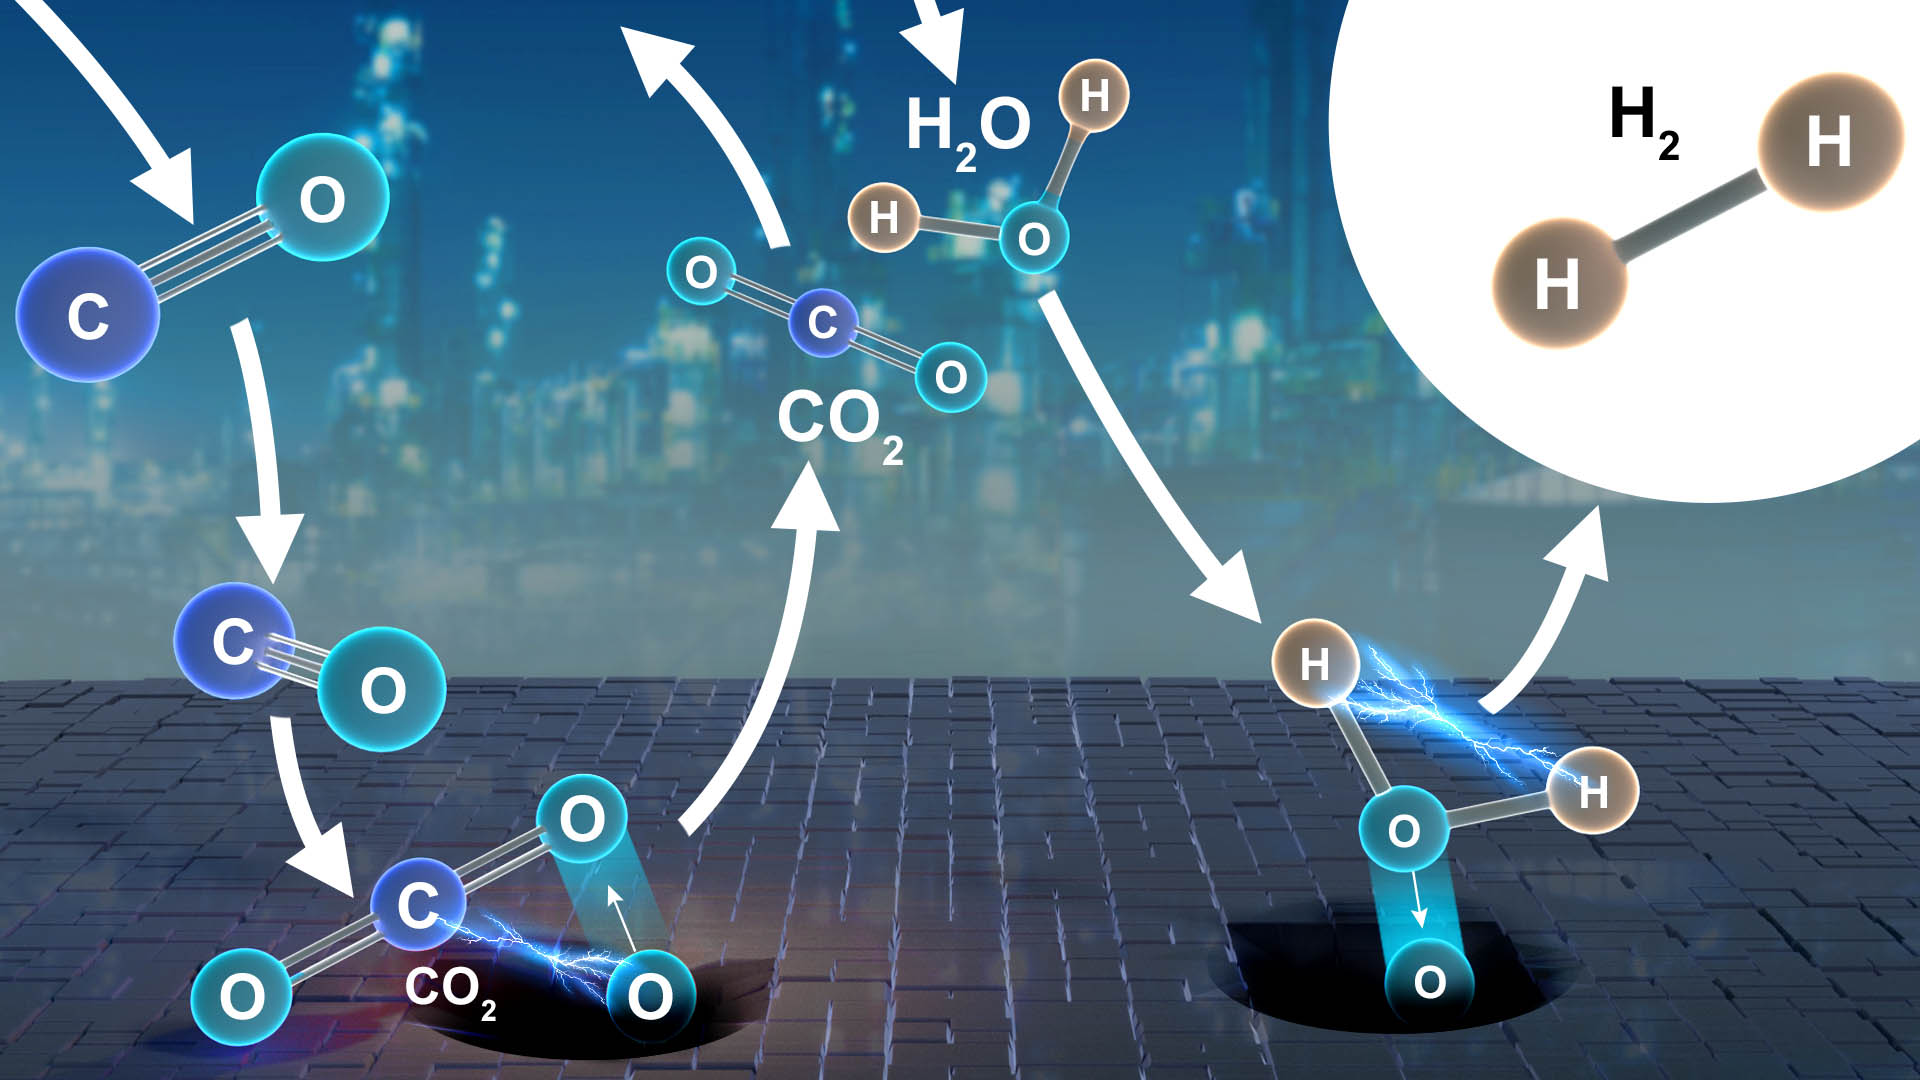 Neutrons shed light on industrial catalyst for hydrogen production